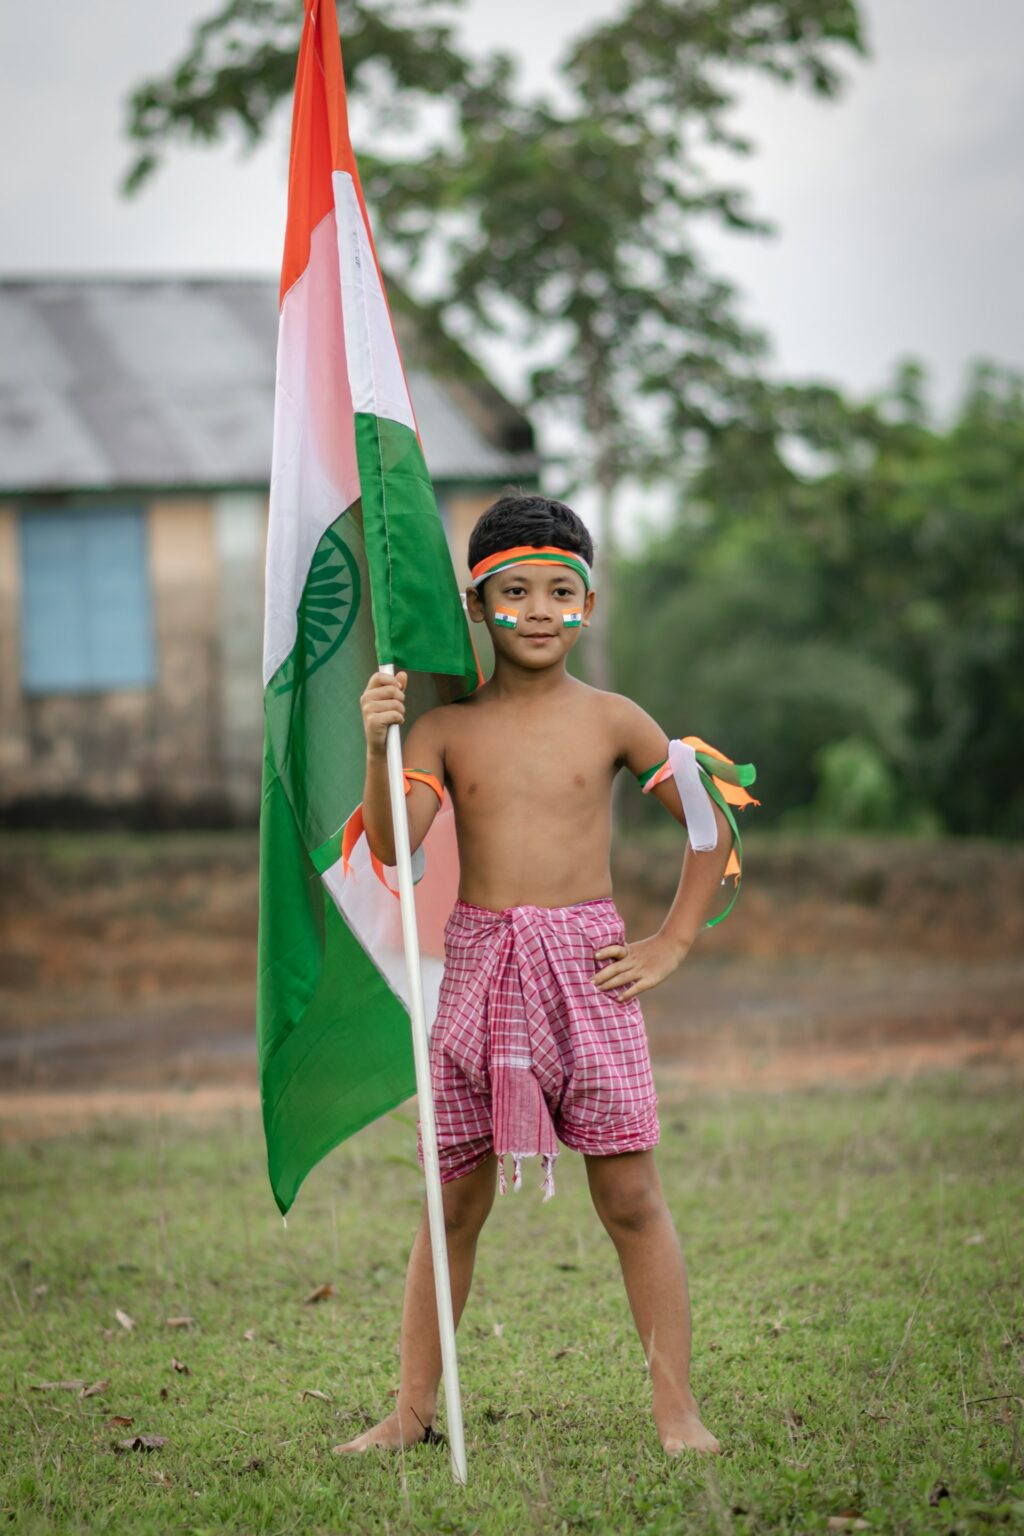 indian-flag-holded-by-a-kid